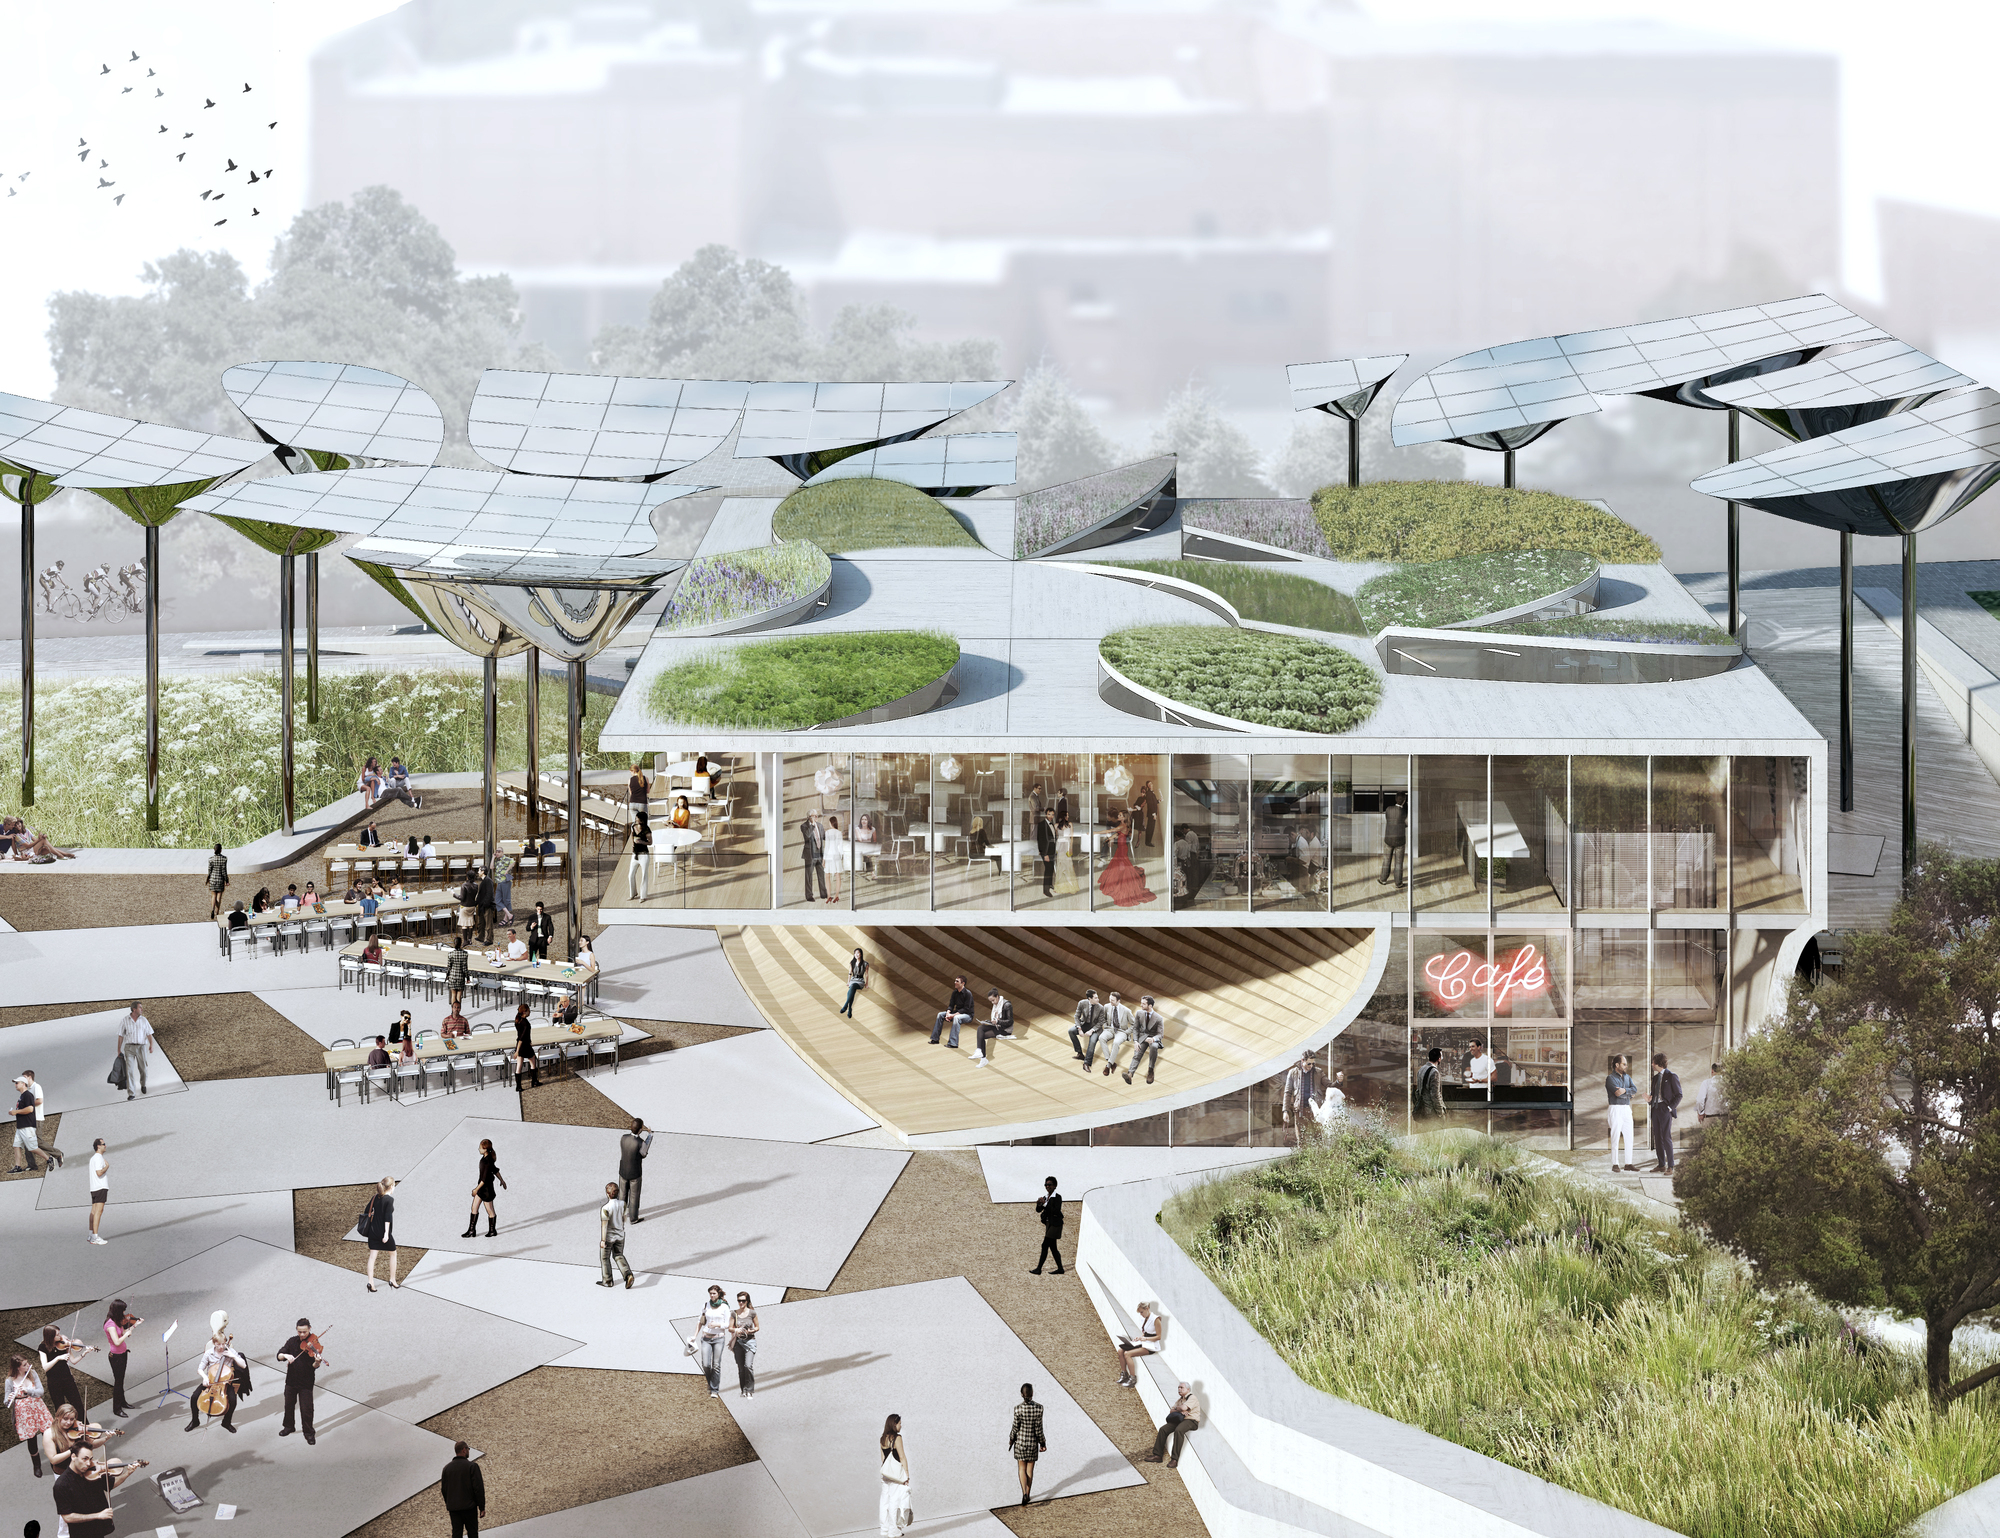 Oma mla and ideo selected to design new park for for Oma design museum